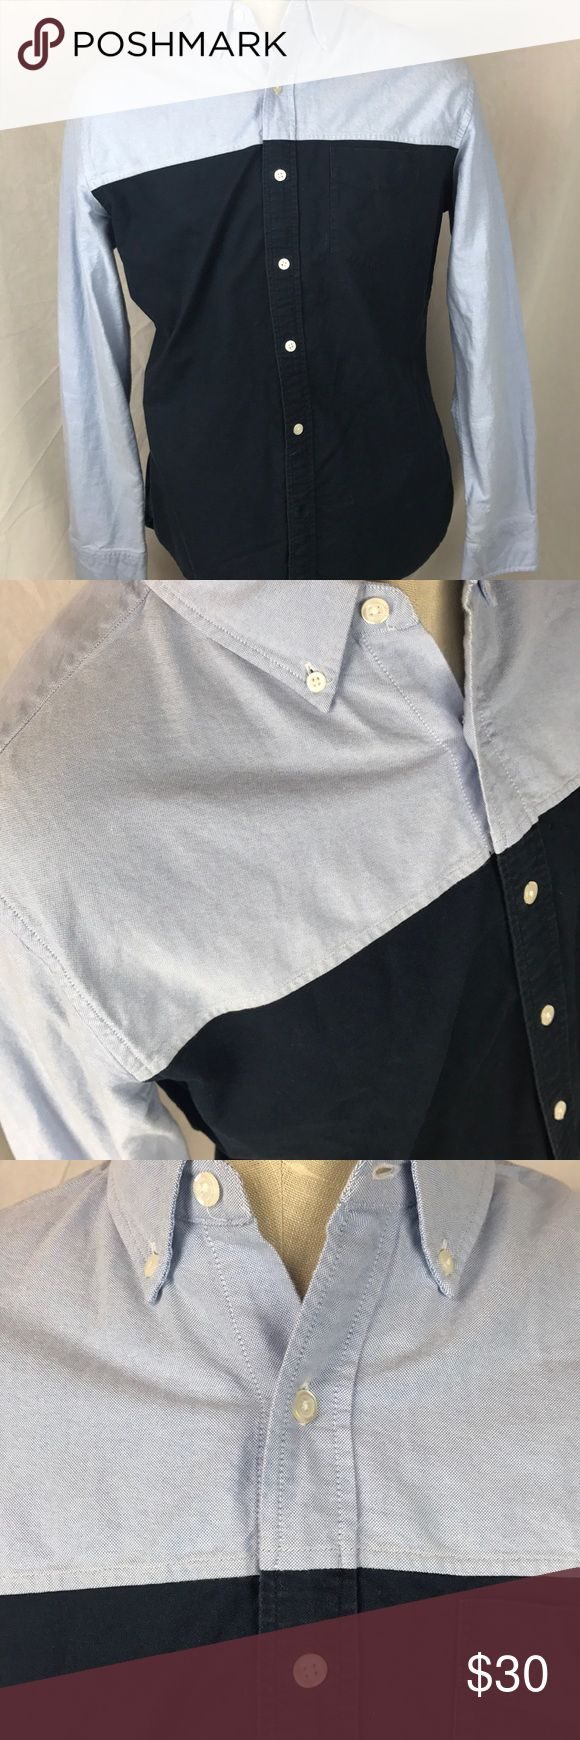 """BONOBOS Men's Slim Fit shirt large color block Shirt in excellent condition.  No notable flaws.  Men's large  Chest:  22.5""""  Length: 28""""  Sleeve:  35""""  Please check measurements for accurate fit.  K Bonobos Shirts Casual Button Down Shirts"""